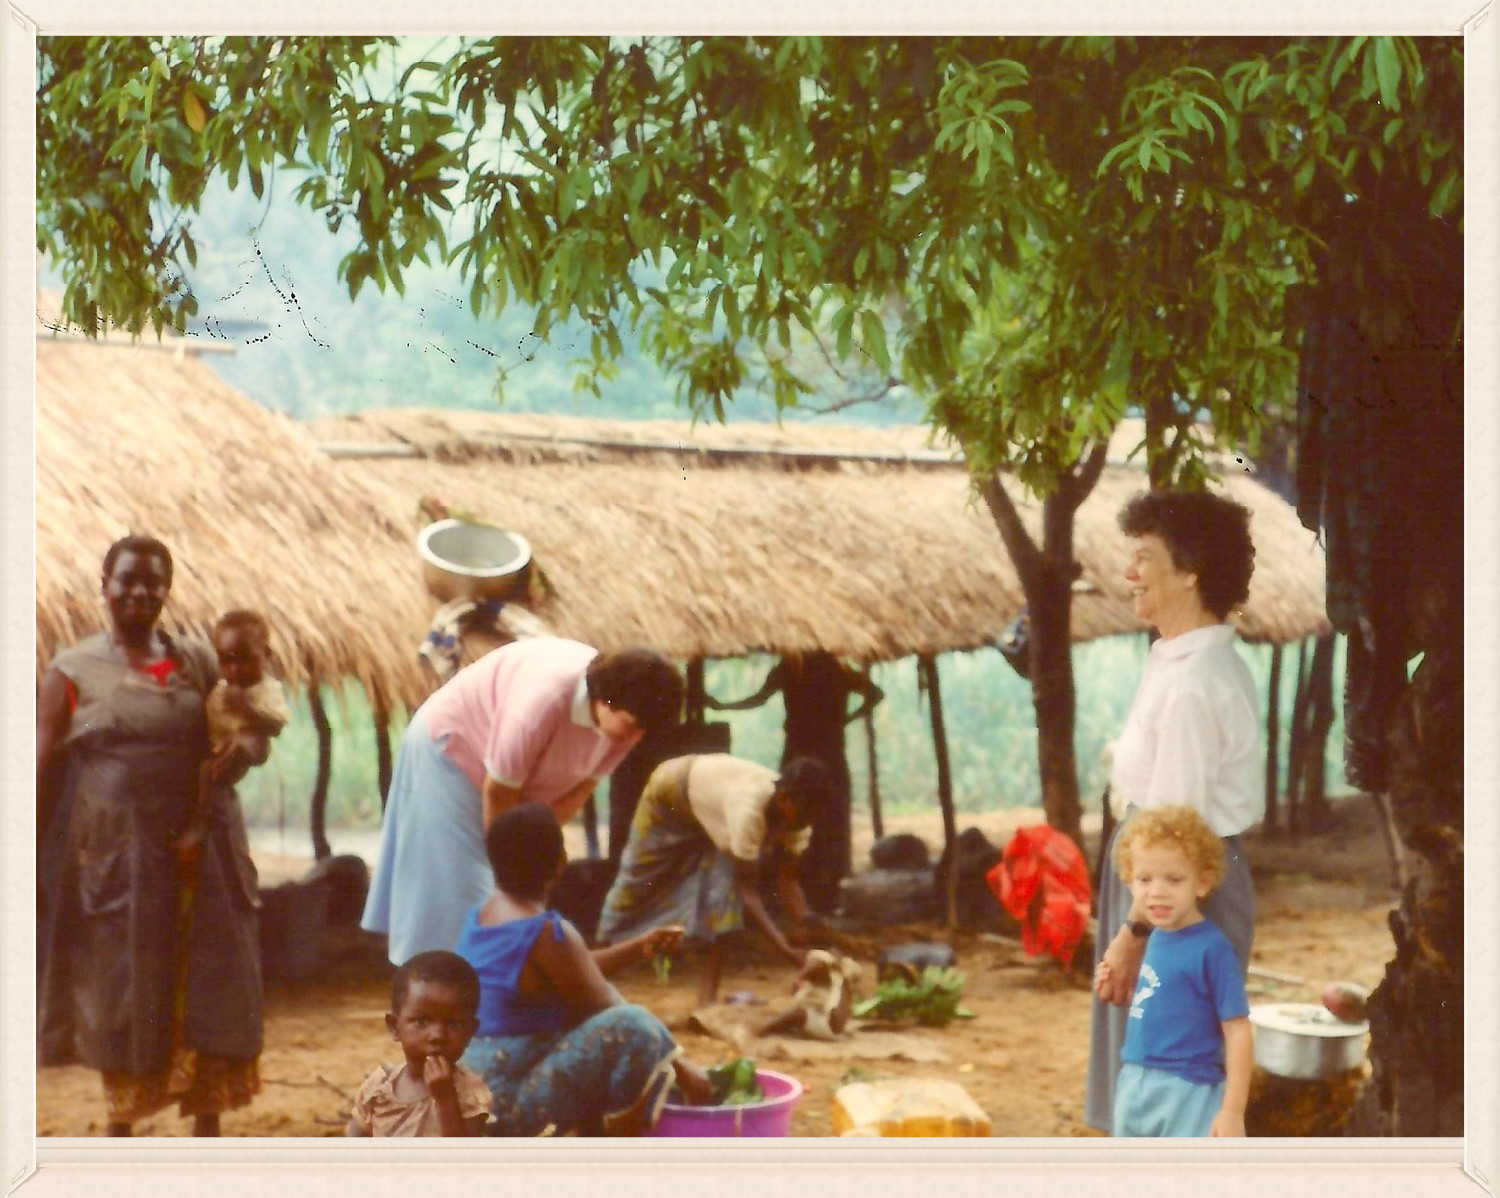 Gilbert and Jeri Roller (on right) first trip to Africa in 1991.